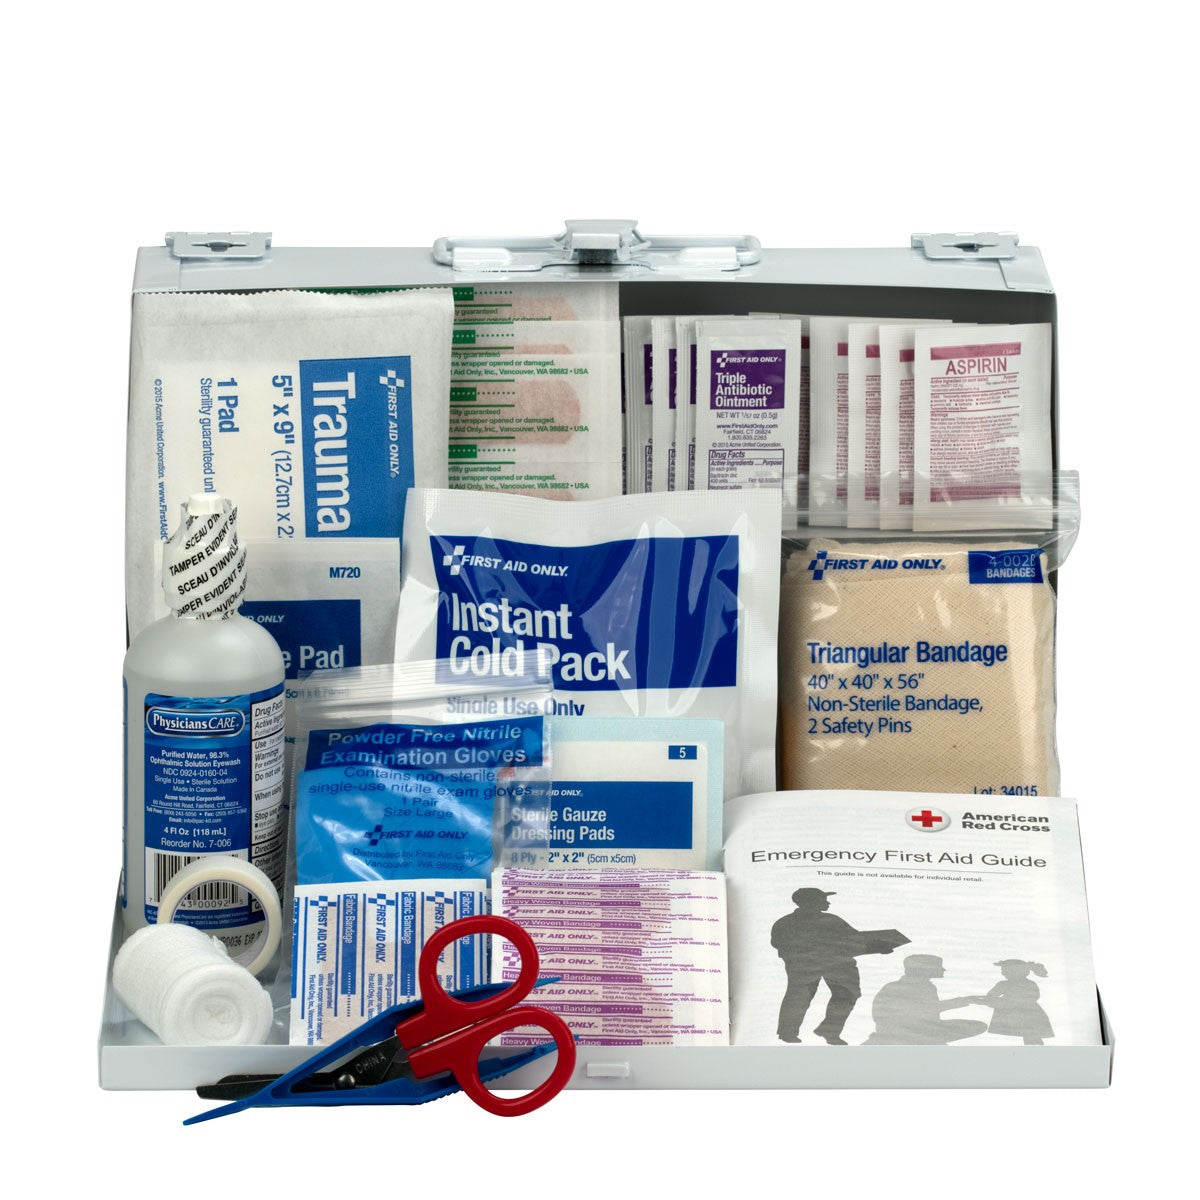 25 Person First Aid Kit, Metal Case - BS-FAK-224-U/FAO-1-FM